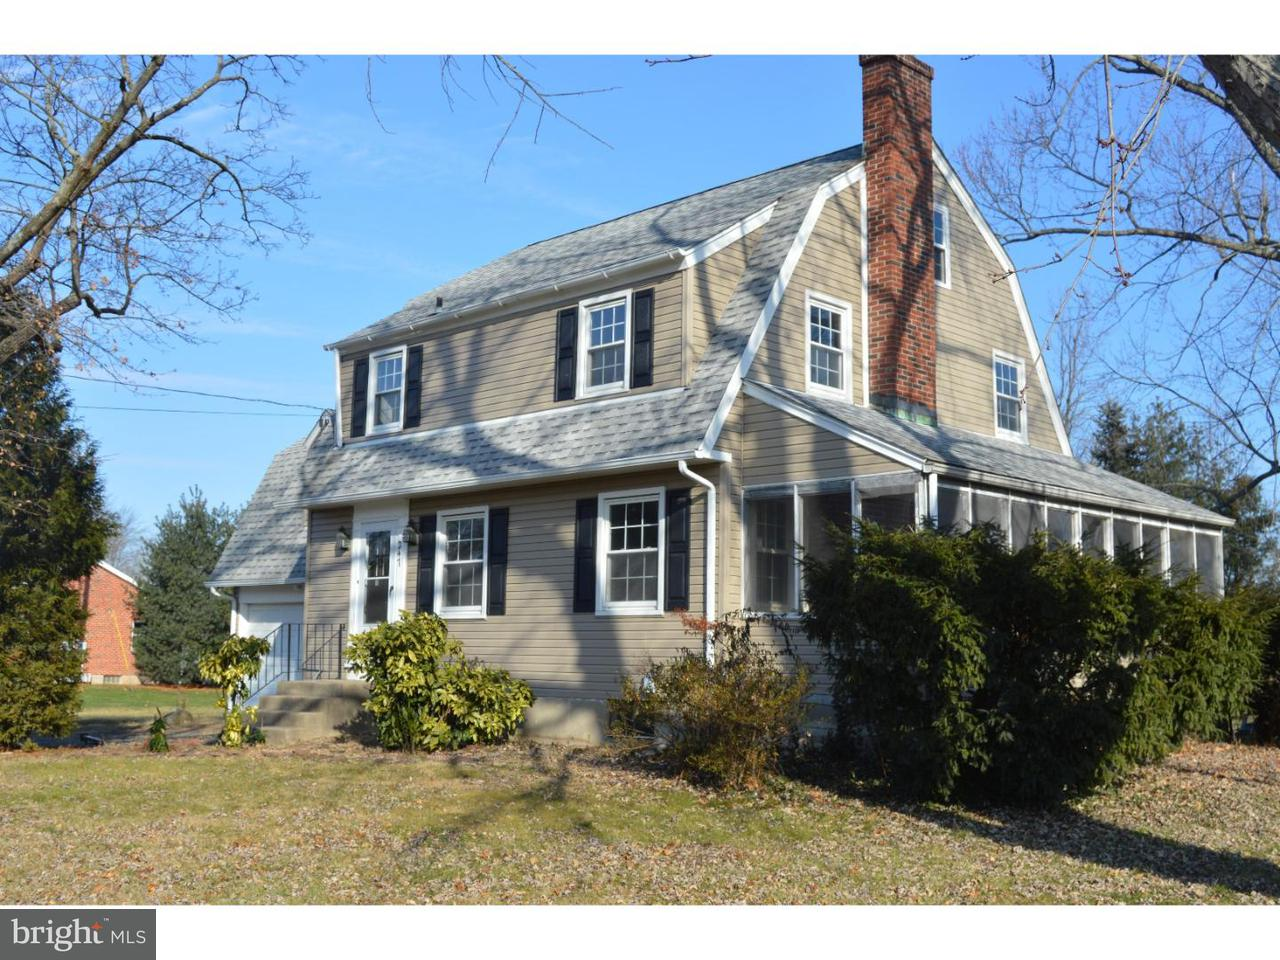 Single Family Home for Rent at 2473 BRISTOL Road Warrington, Pennsylvania 18976 United States